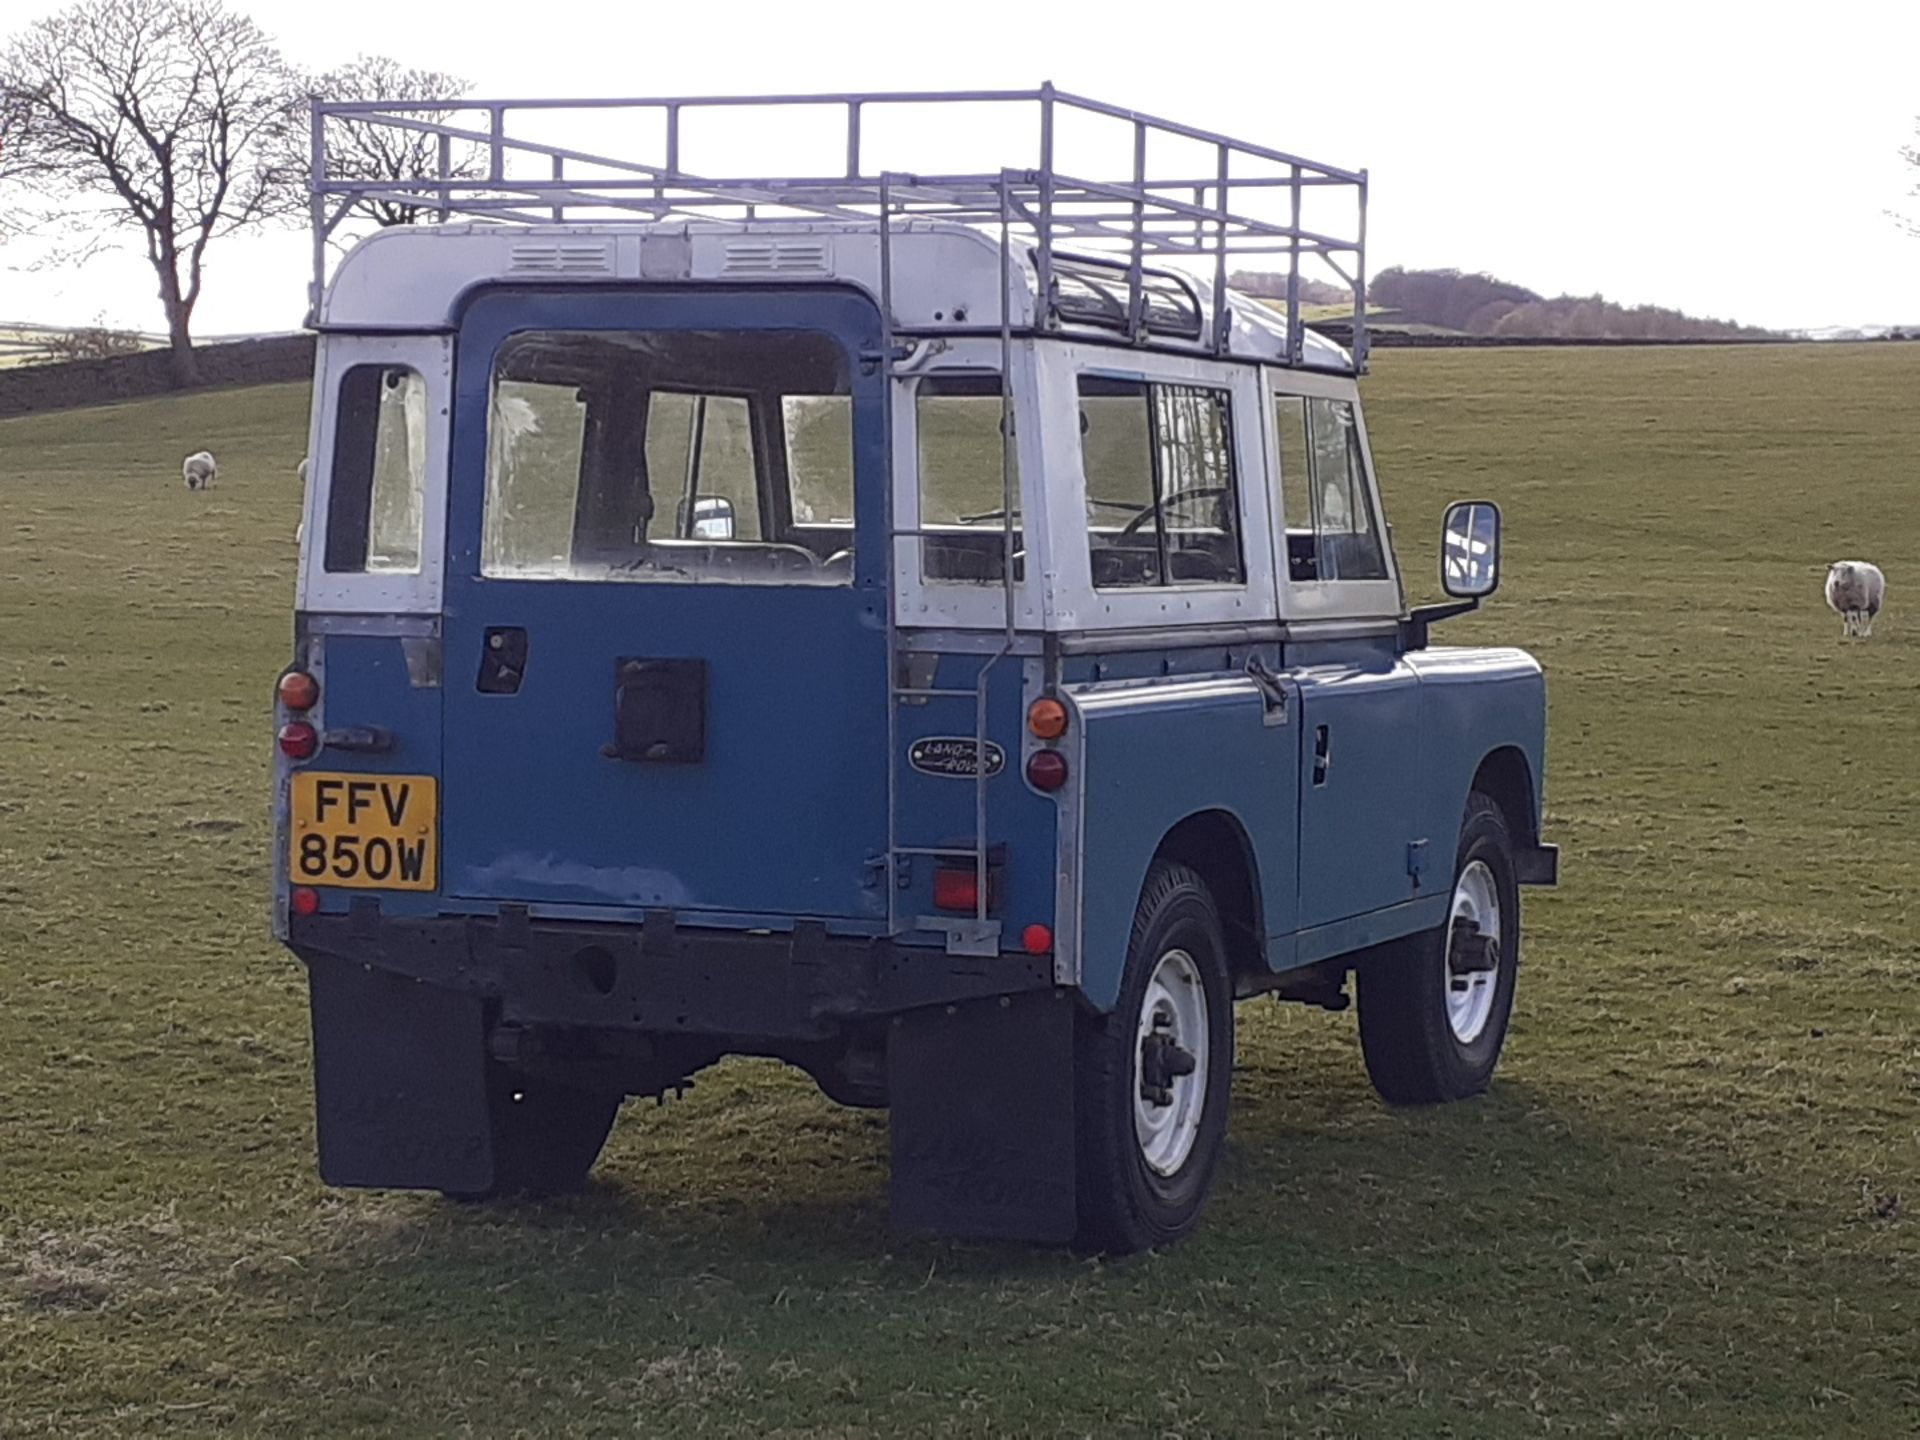 1980 LAND ROVER SERIES III CLASSIC STATION WAGON, TAX AND MOT EXEMPT *NO VAT* - Image 10 of 22